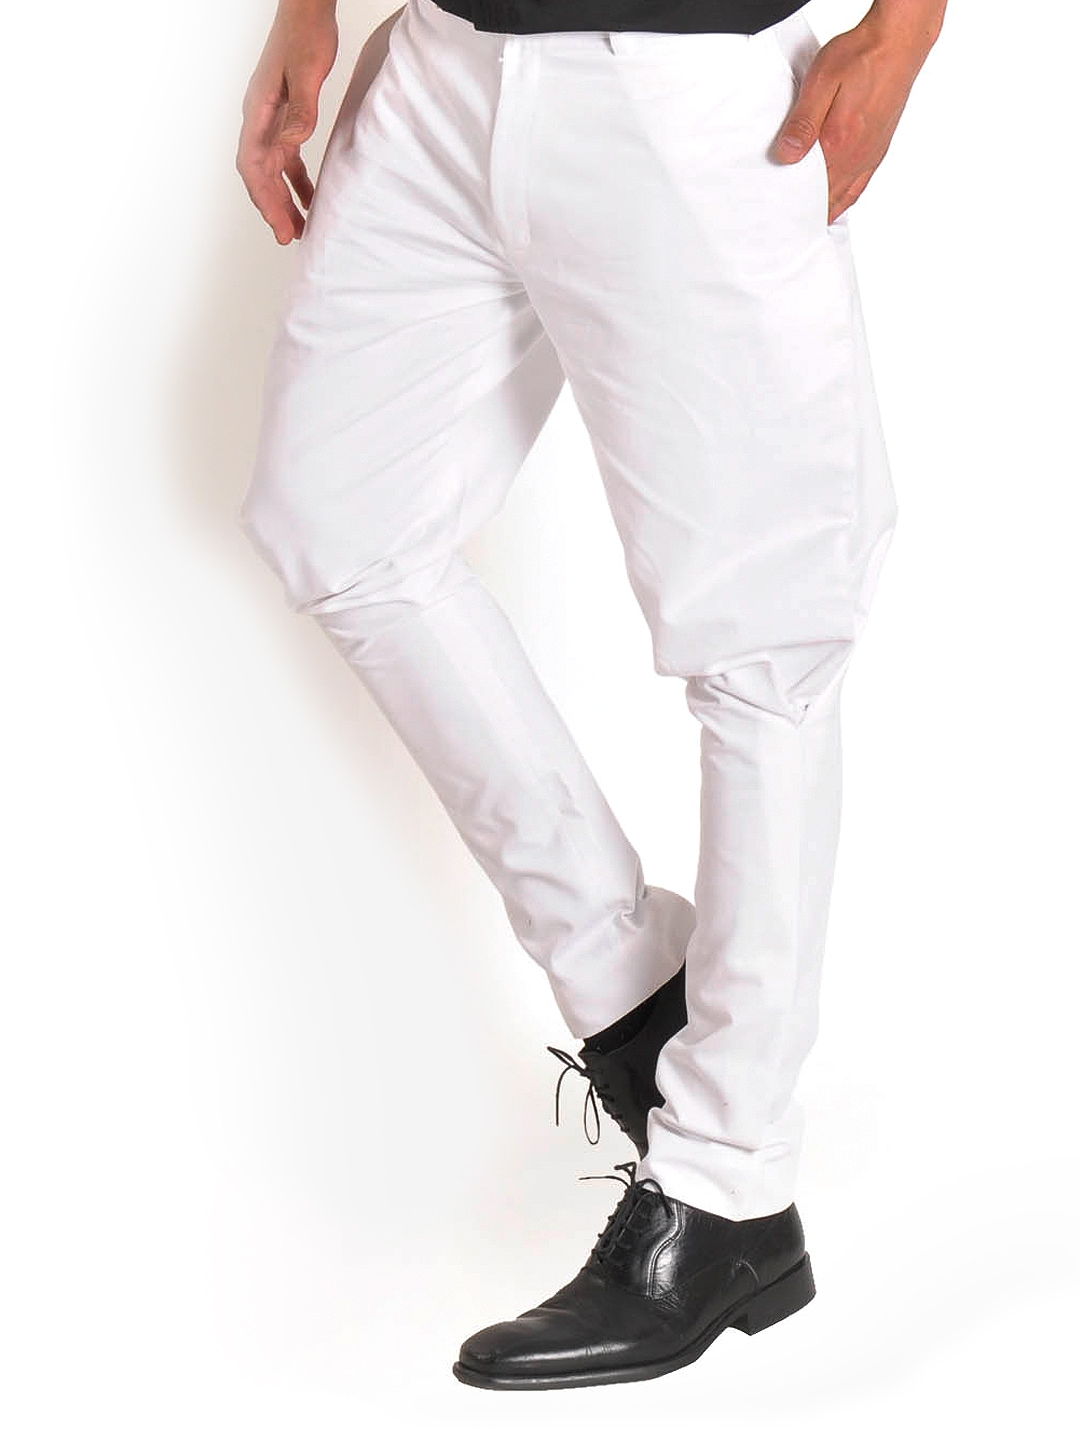 Where Can I Buy White Pants For Men